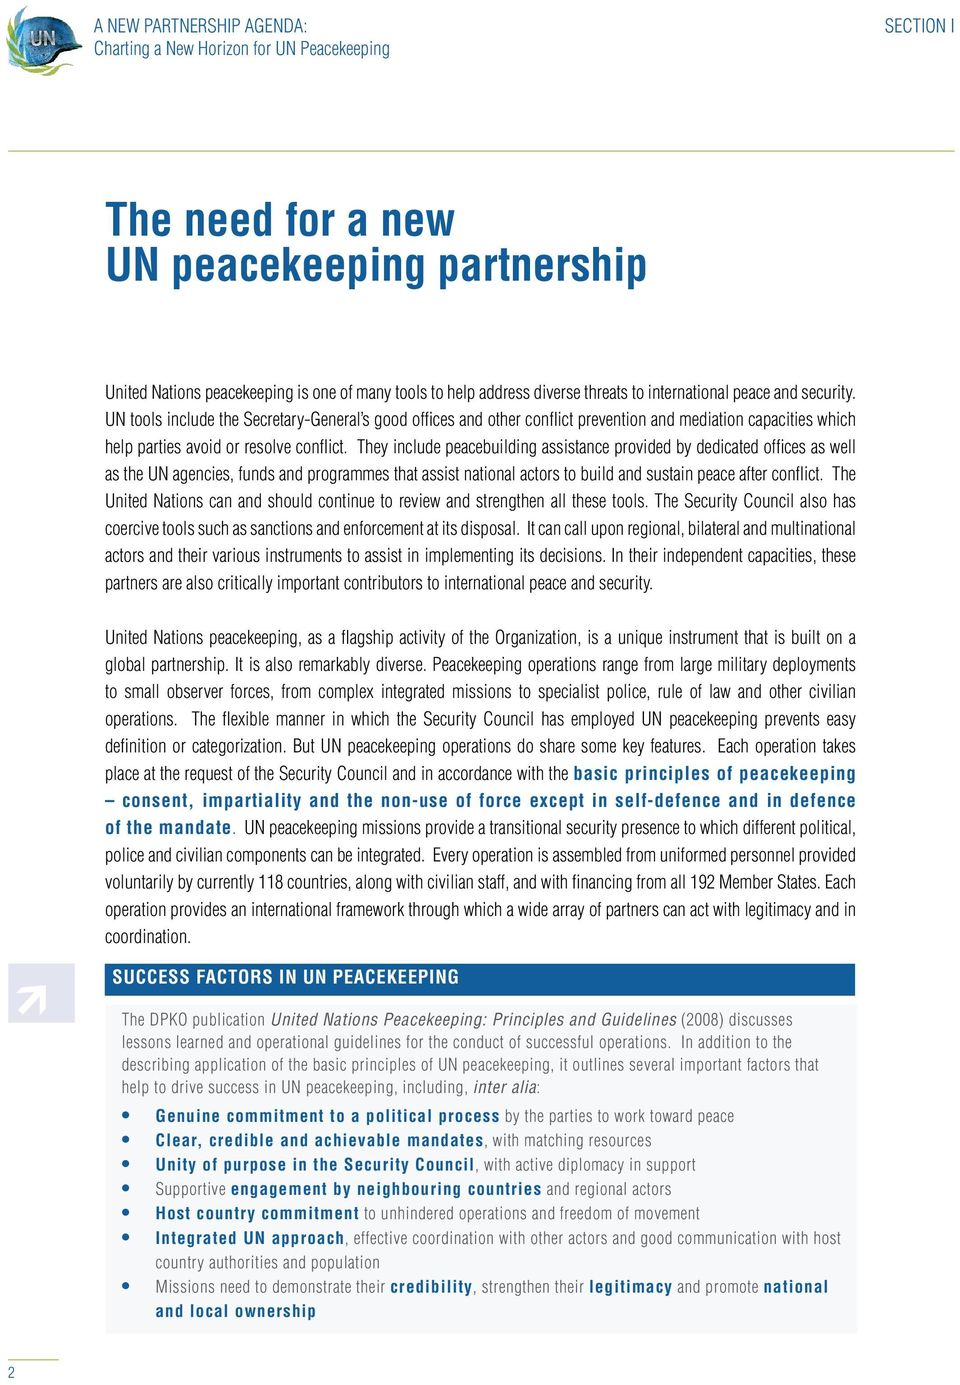 They include peacebuilding assistance provided by dedicated offices as well as the UN agencies, funds and programmes that assist national actors to build and sustain peace after conflict.